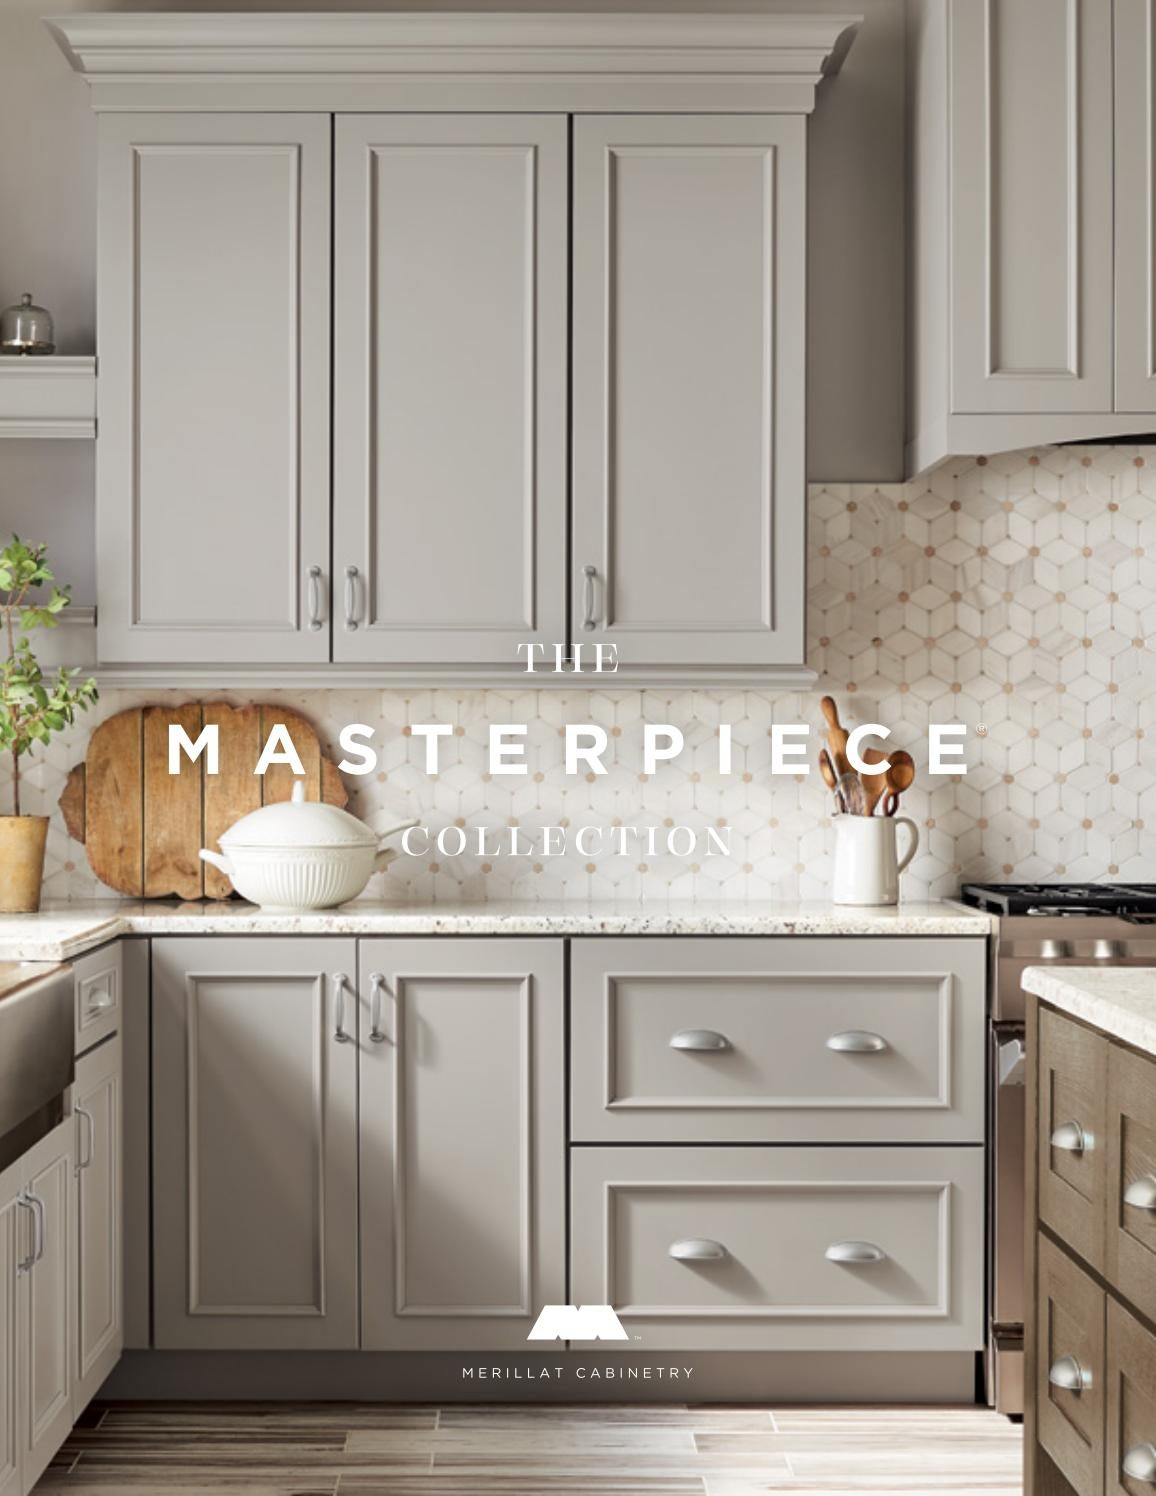 Merillat Masterpiece Collection By Merillat Cabinetry Issuu